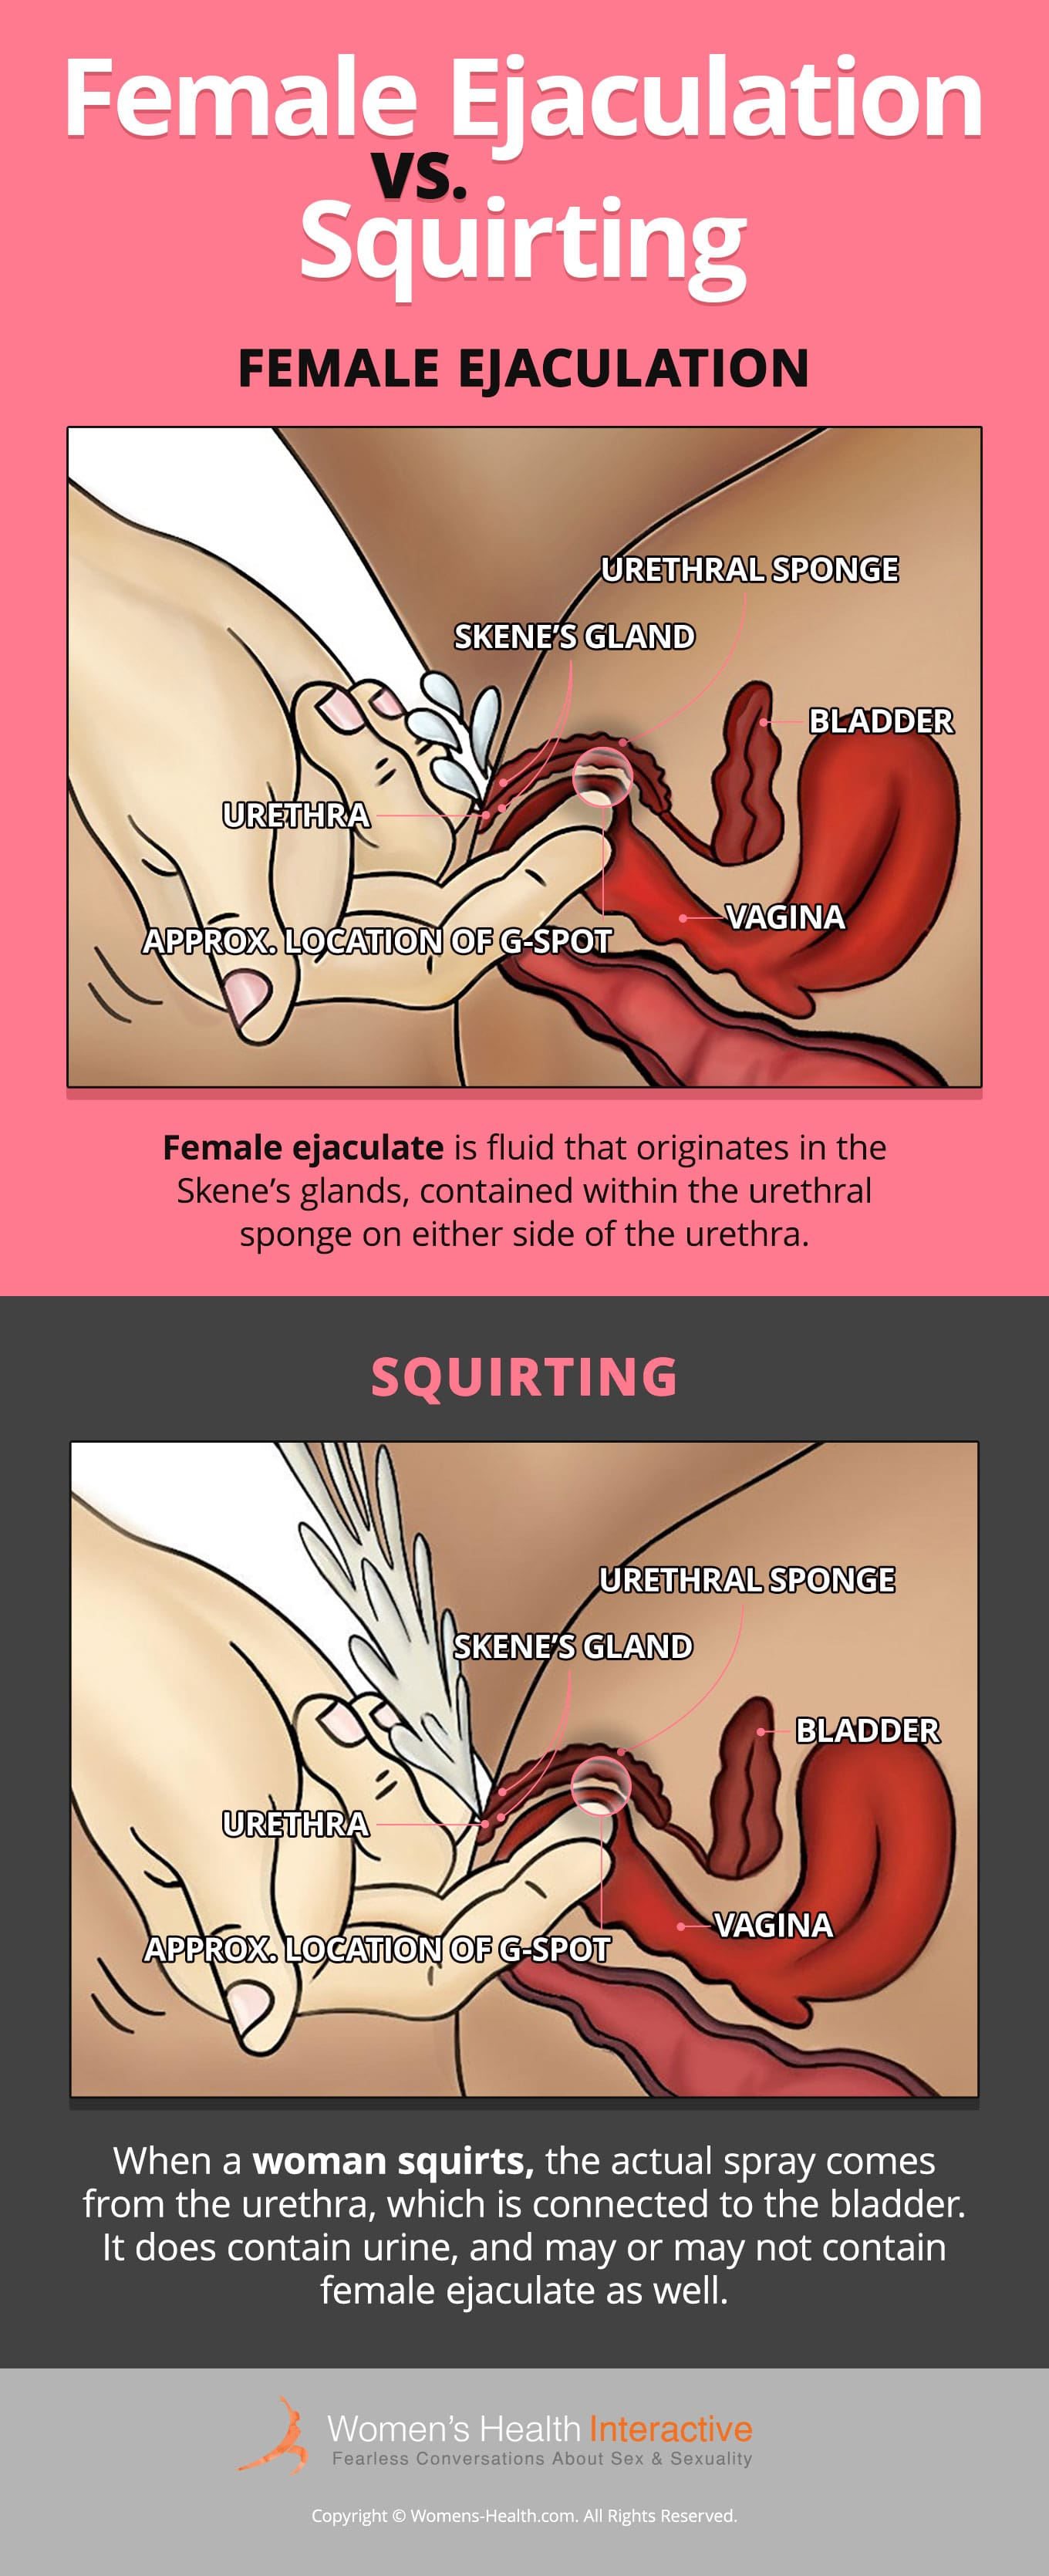 An Infographic Illustrating The Differences Between Female Ejaculation And Squirting